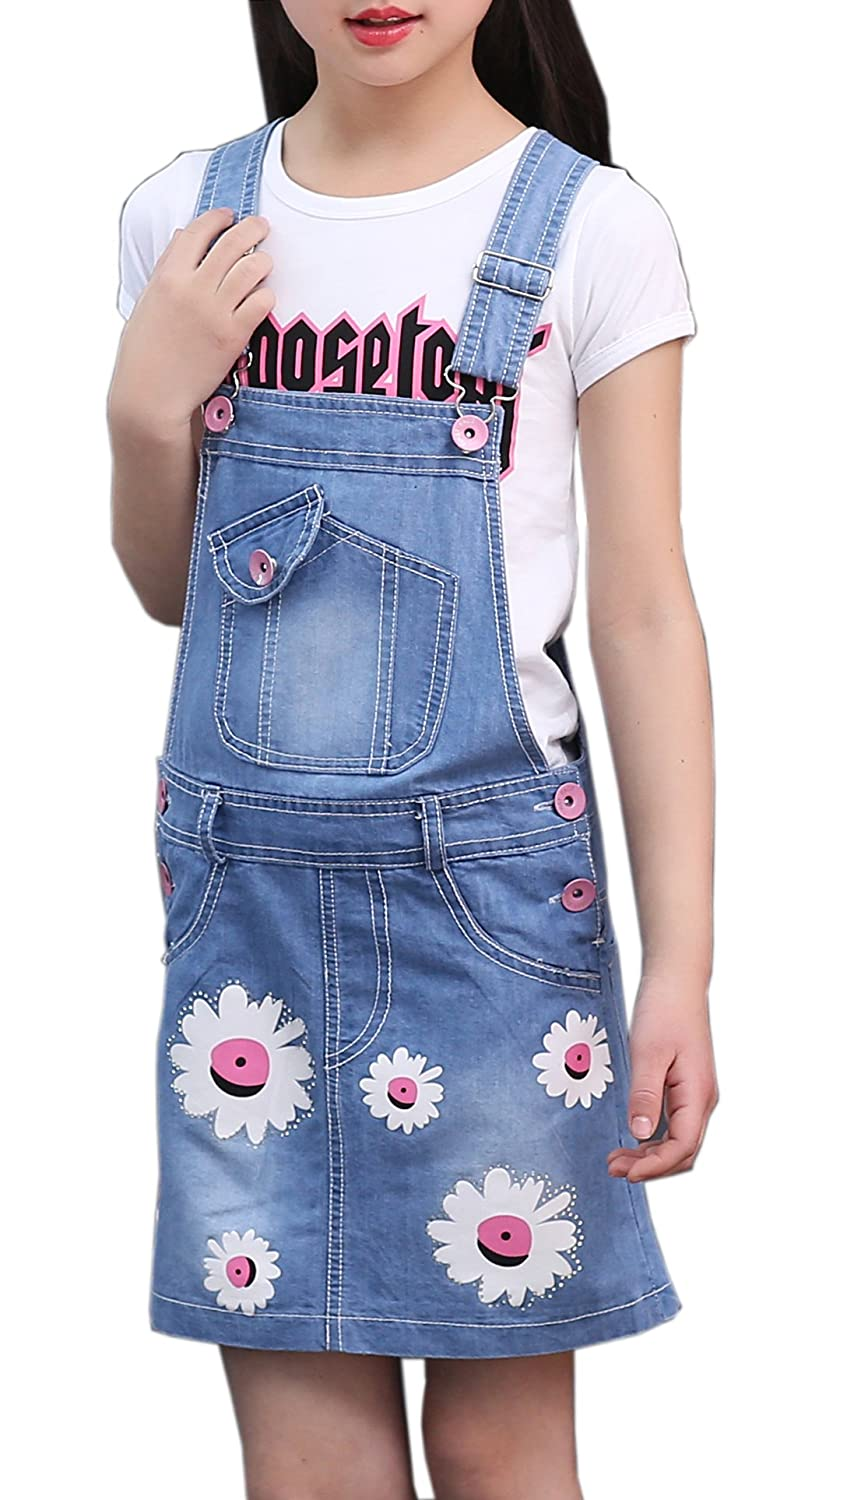 83462a4445e Amazon.com  Sitmptol Big Girls Pink White Floral Printed Bibs Overall  Skirts Sweet T-Shirt 160 Blue  Clothing